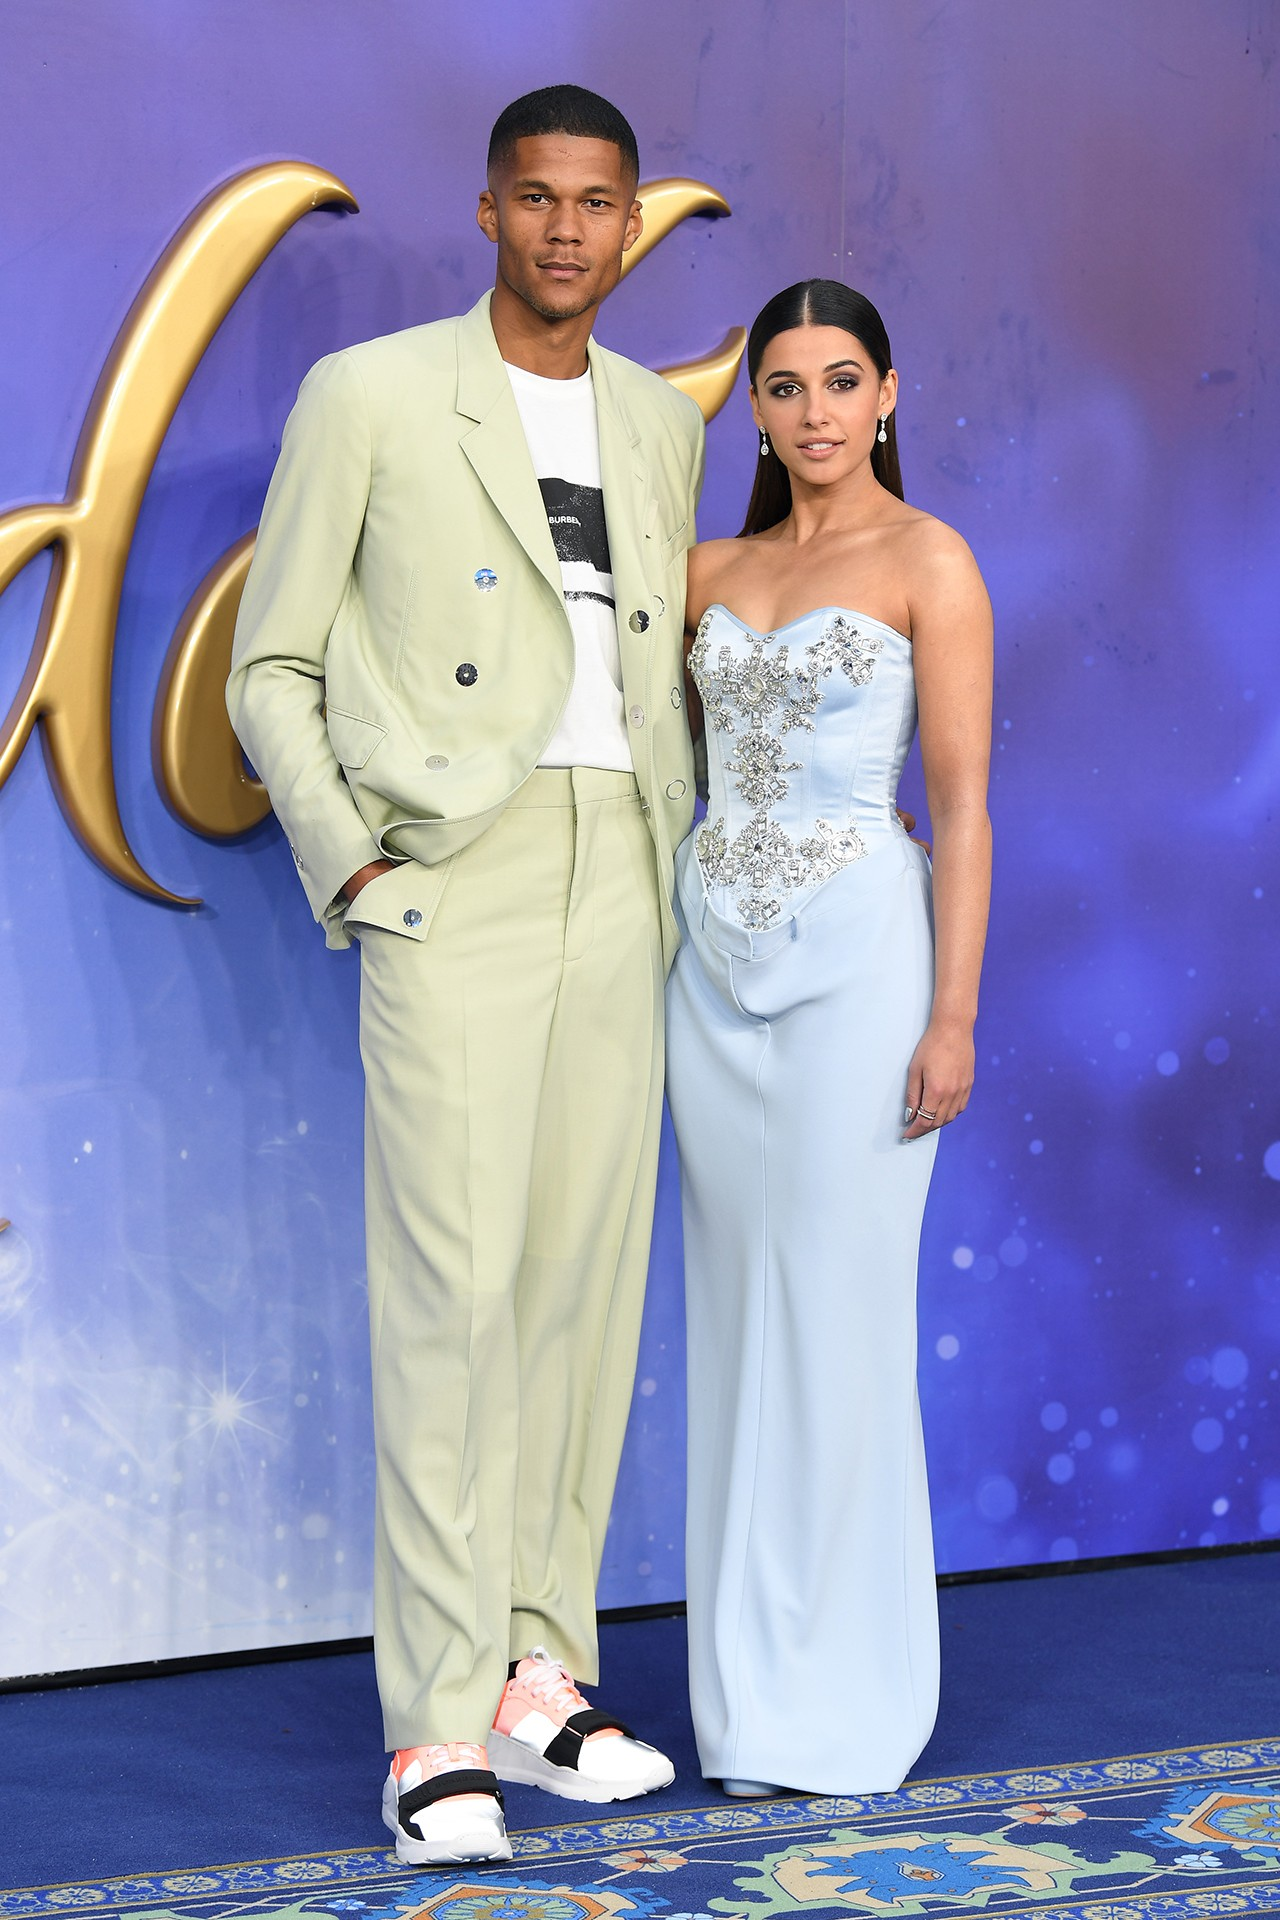 Naomi Scott Princess Jasmine Actress Aladdin Disney Live Action Movie Film 2019 Premiere Berlin Red Carpet Valentino Dress Orange